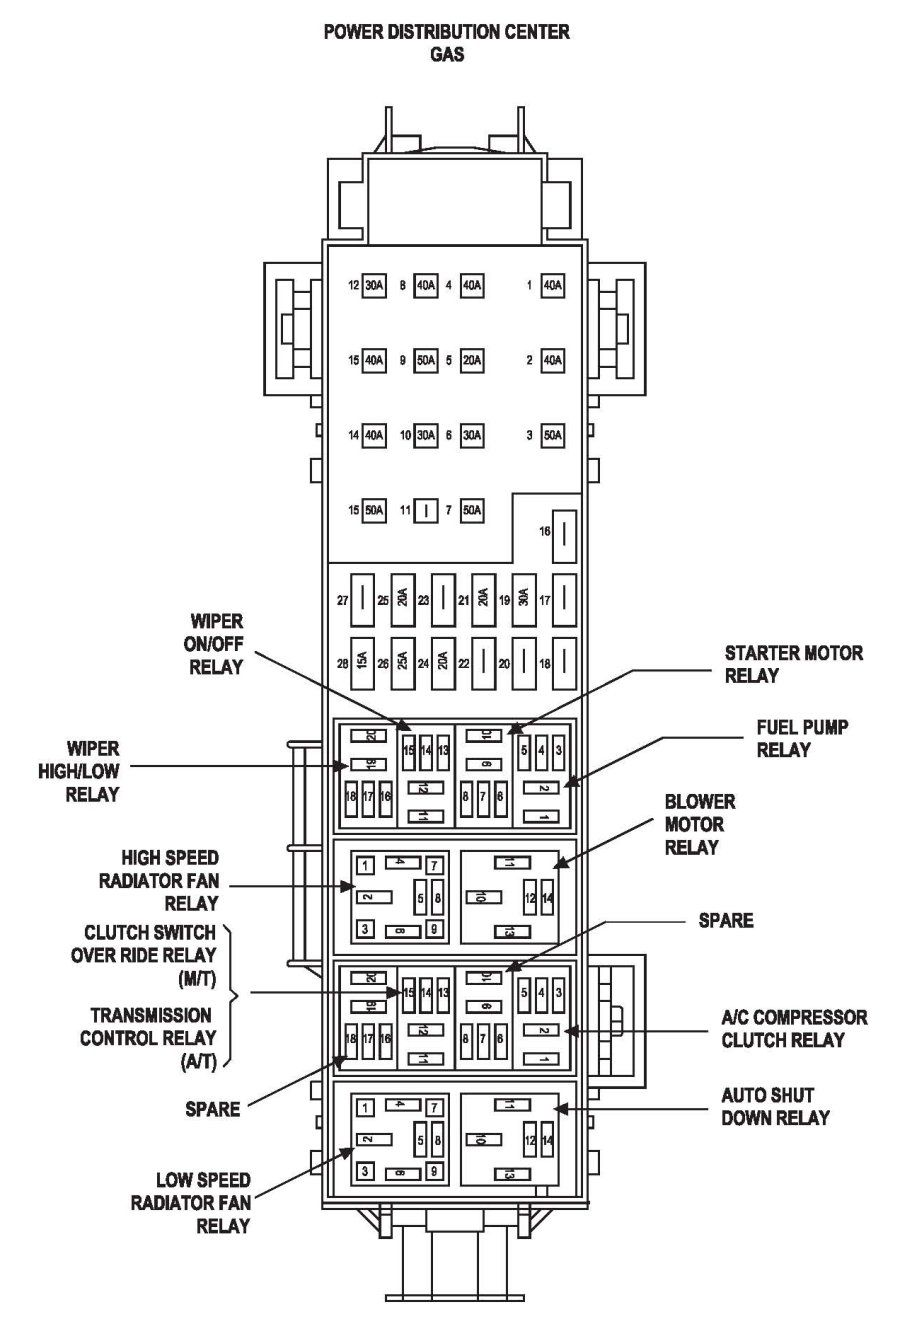 b3536c3739783eb19f827744cc42c3c4 jeep liberty fuse box diagram image details jeep liberty  at cos-gaming.co